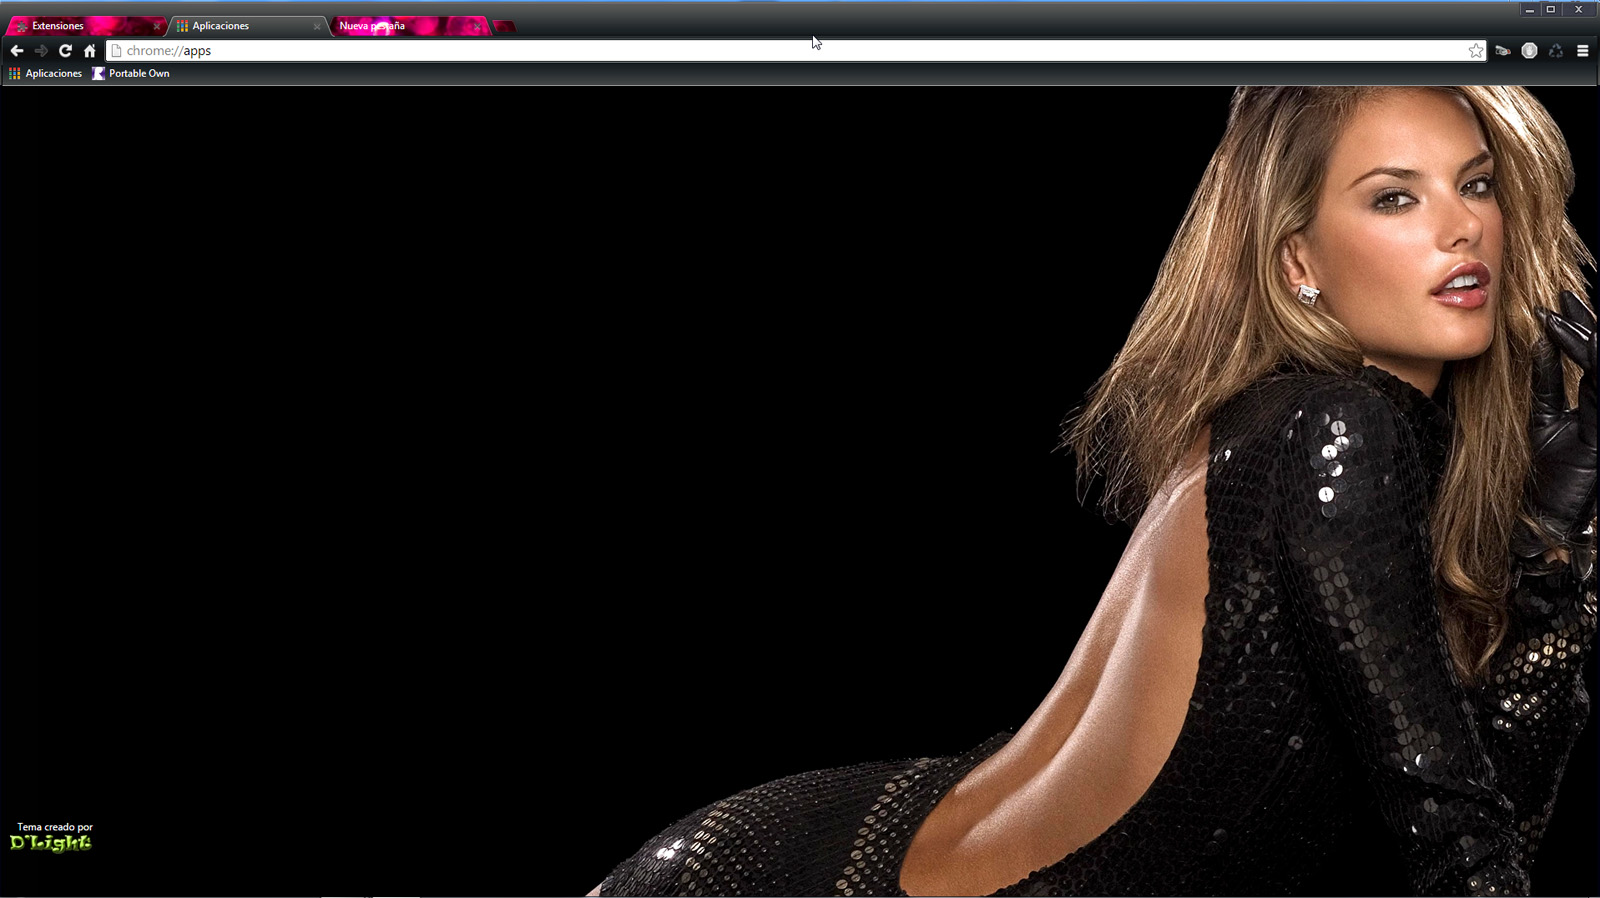 Google theme resolution - Alessandra Ambrosio A Theme For Google Chrome Hd 1920x1200 And 2560x1600 Pixels